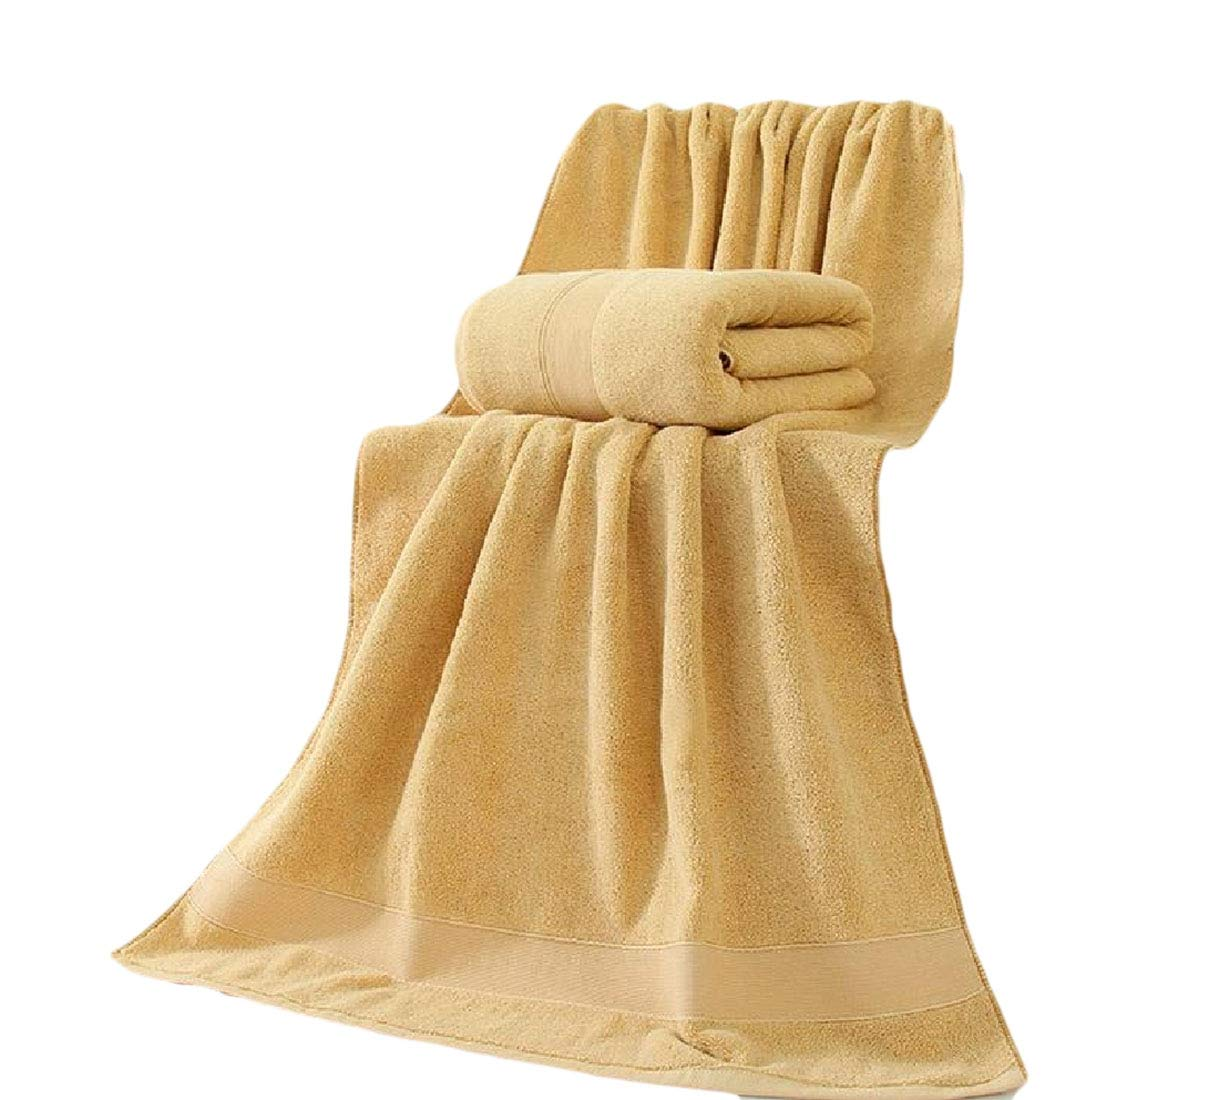 Sebaby Fit-and-Flare Highly Absorbent Cute Antibacterial Fast Drying Flattering No Fading Luxurious Stylish for Hotel and Spa Contenta Bath Beach Spa and Fitness Towel Brown 80160